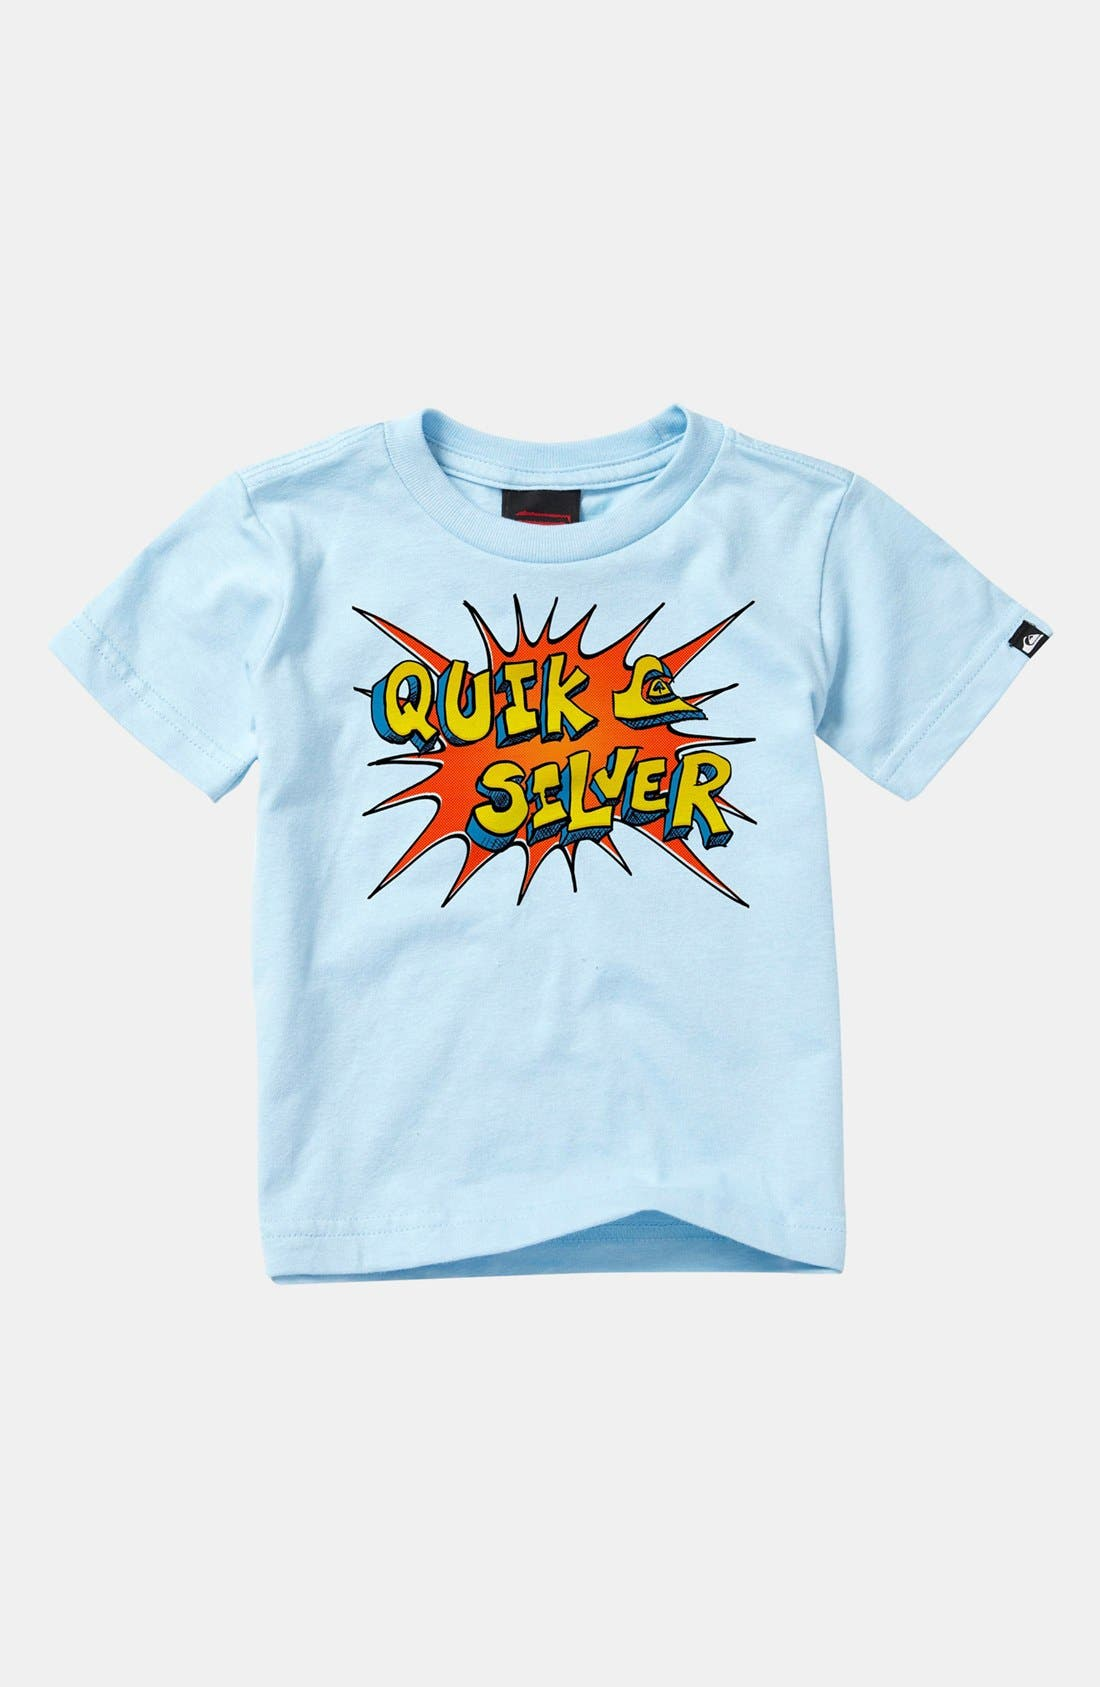 Alternate Image 1 Selected - Quiksilver 'Kapow' T-Shirt (Toddler Boys)